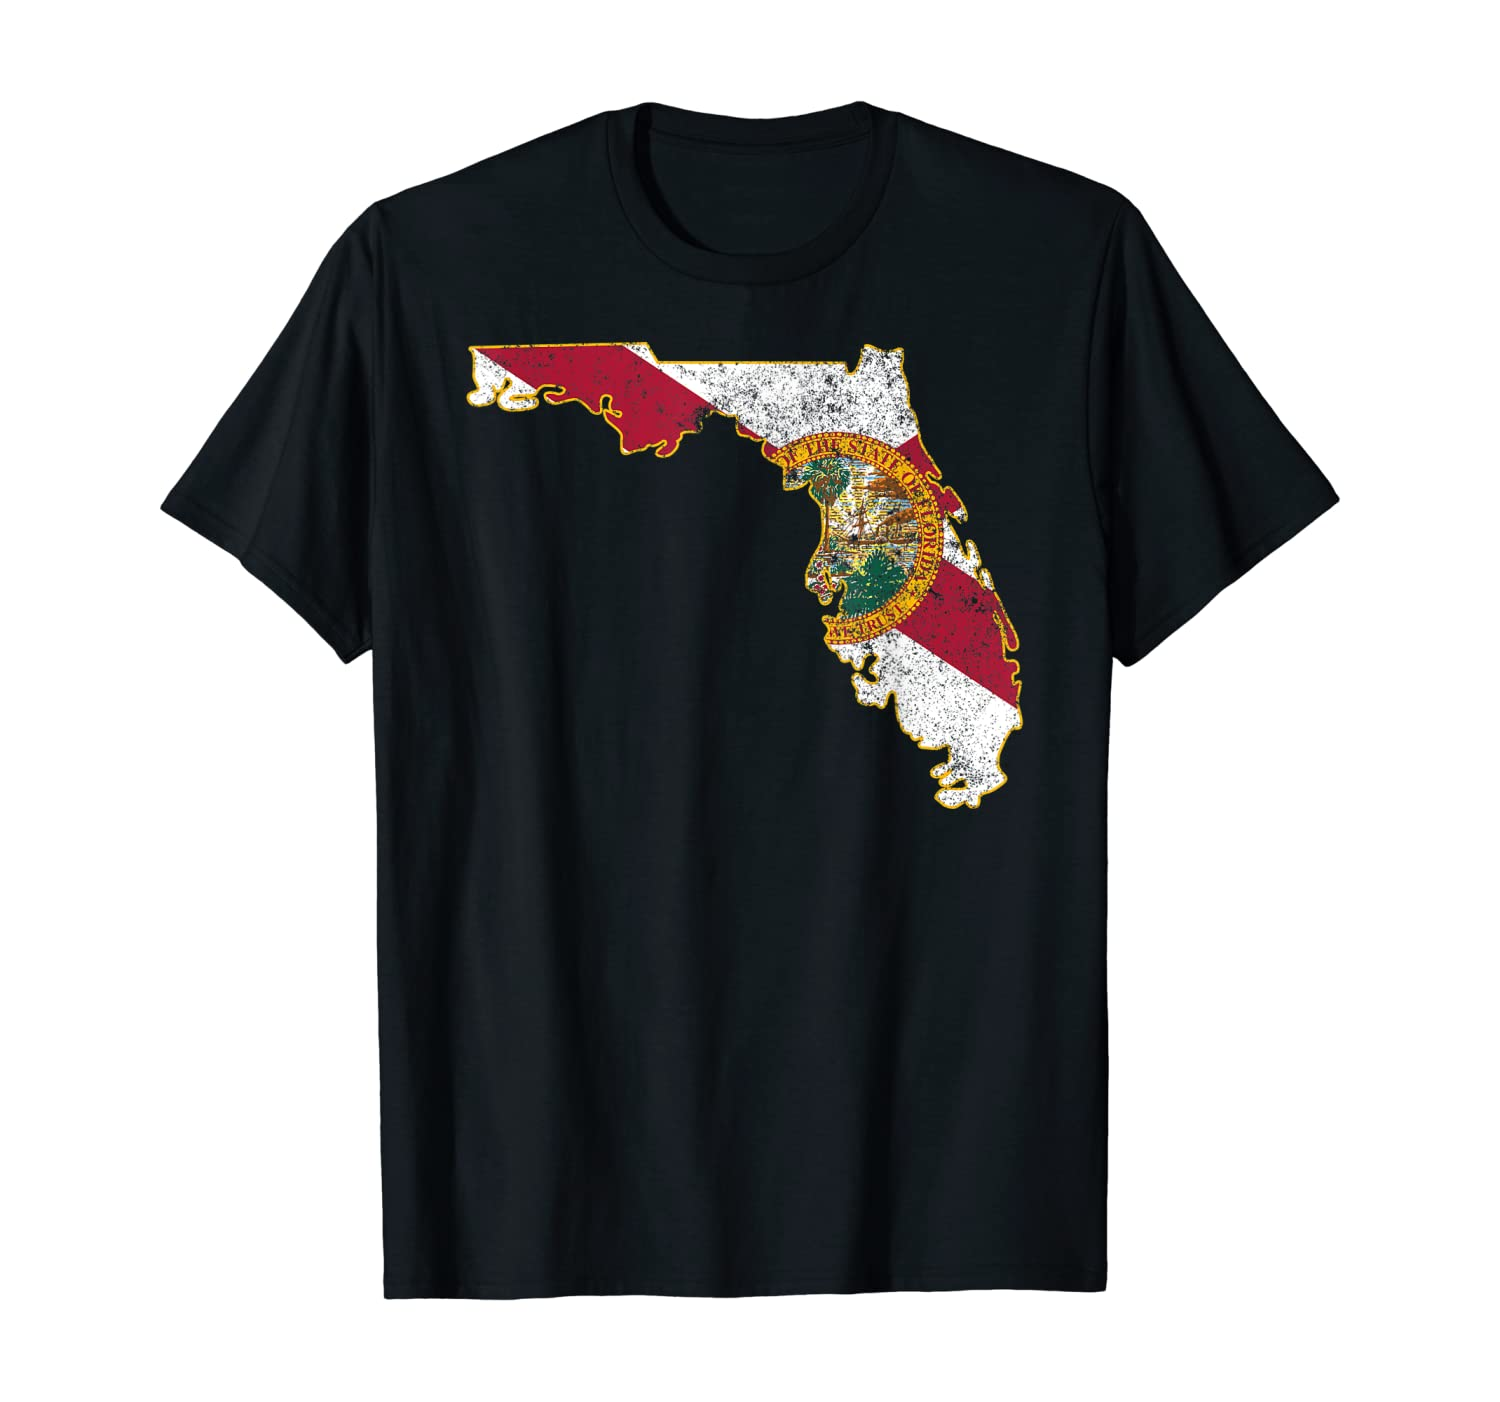 Florida Shirt: State T-Shirt With Florida Shape Flag